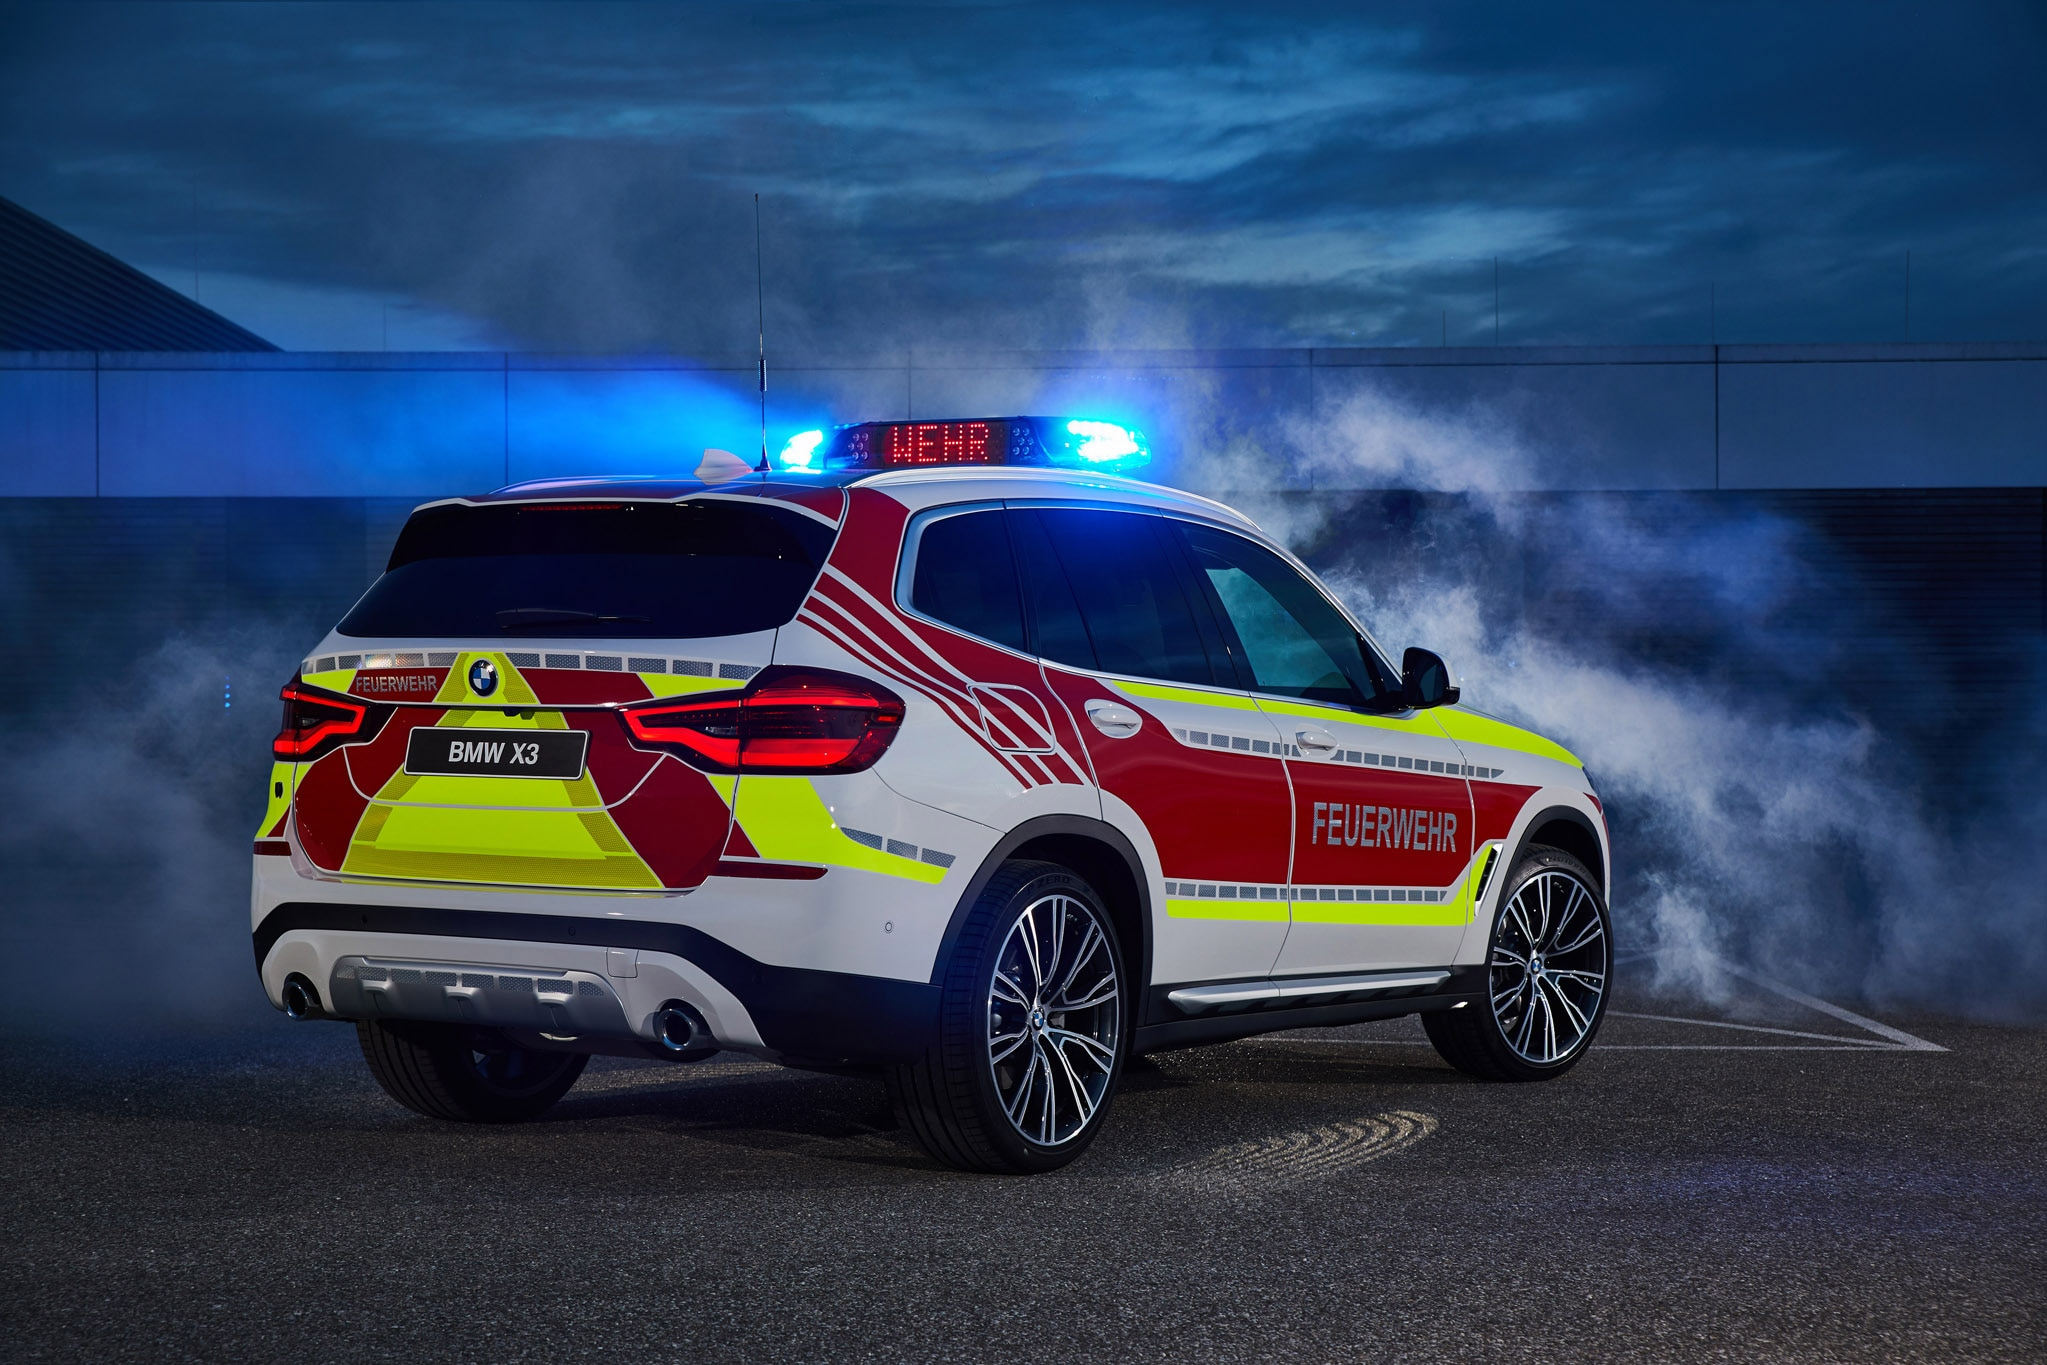 BMW X3 XDrive20d As A Fire Service Command Vehicle 1